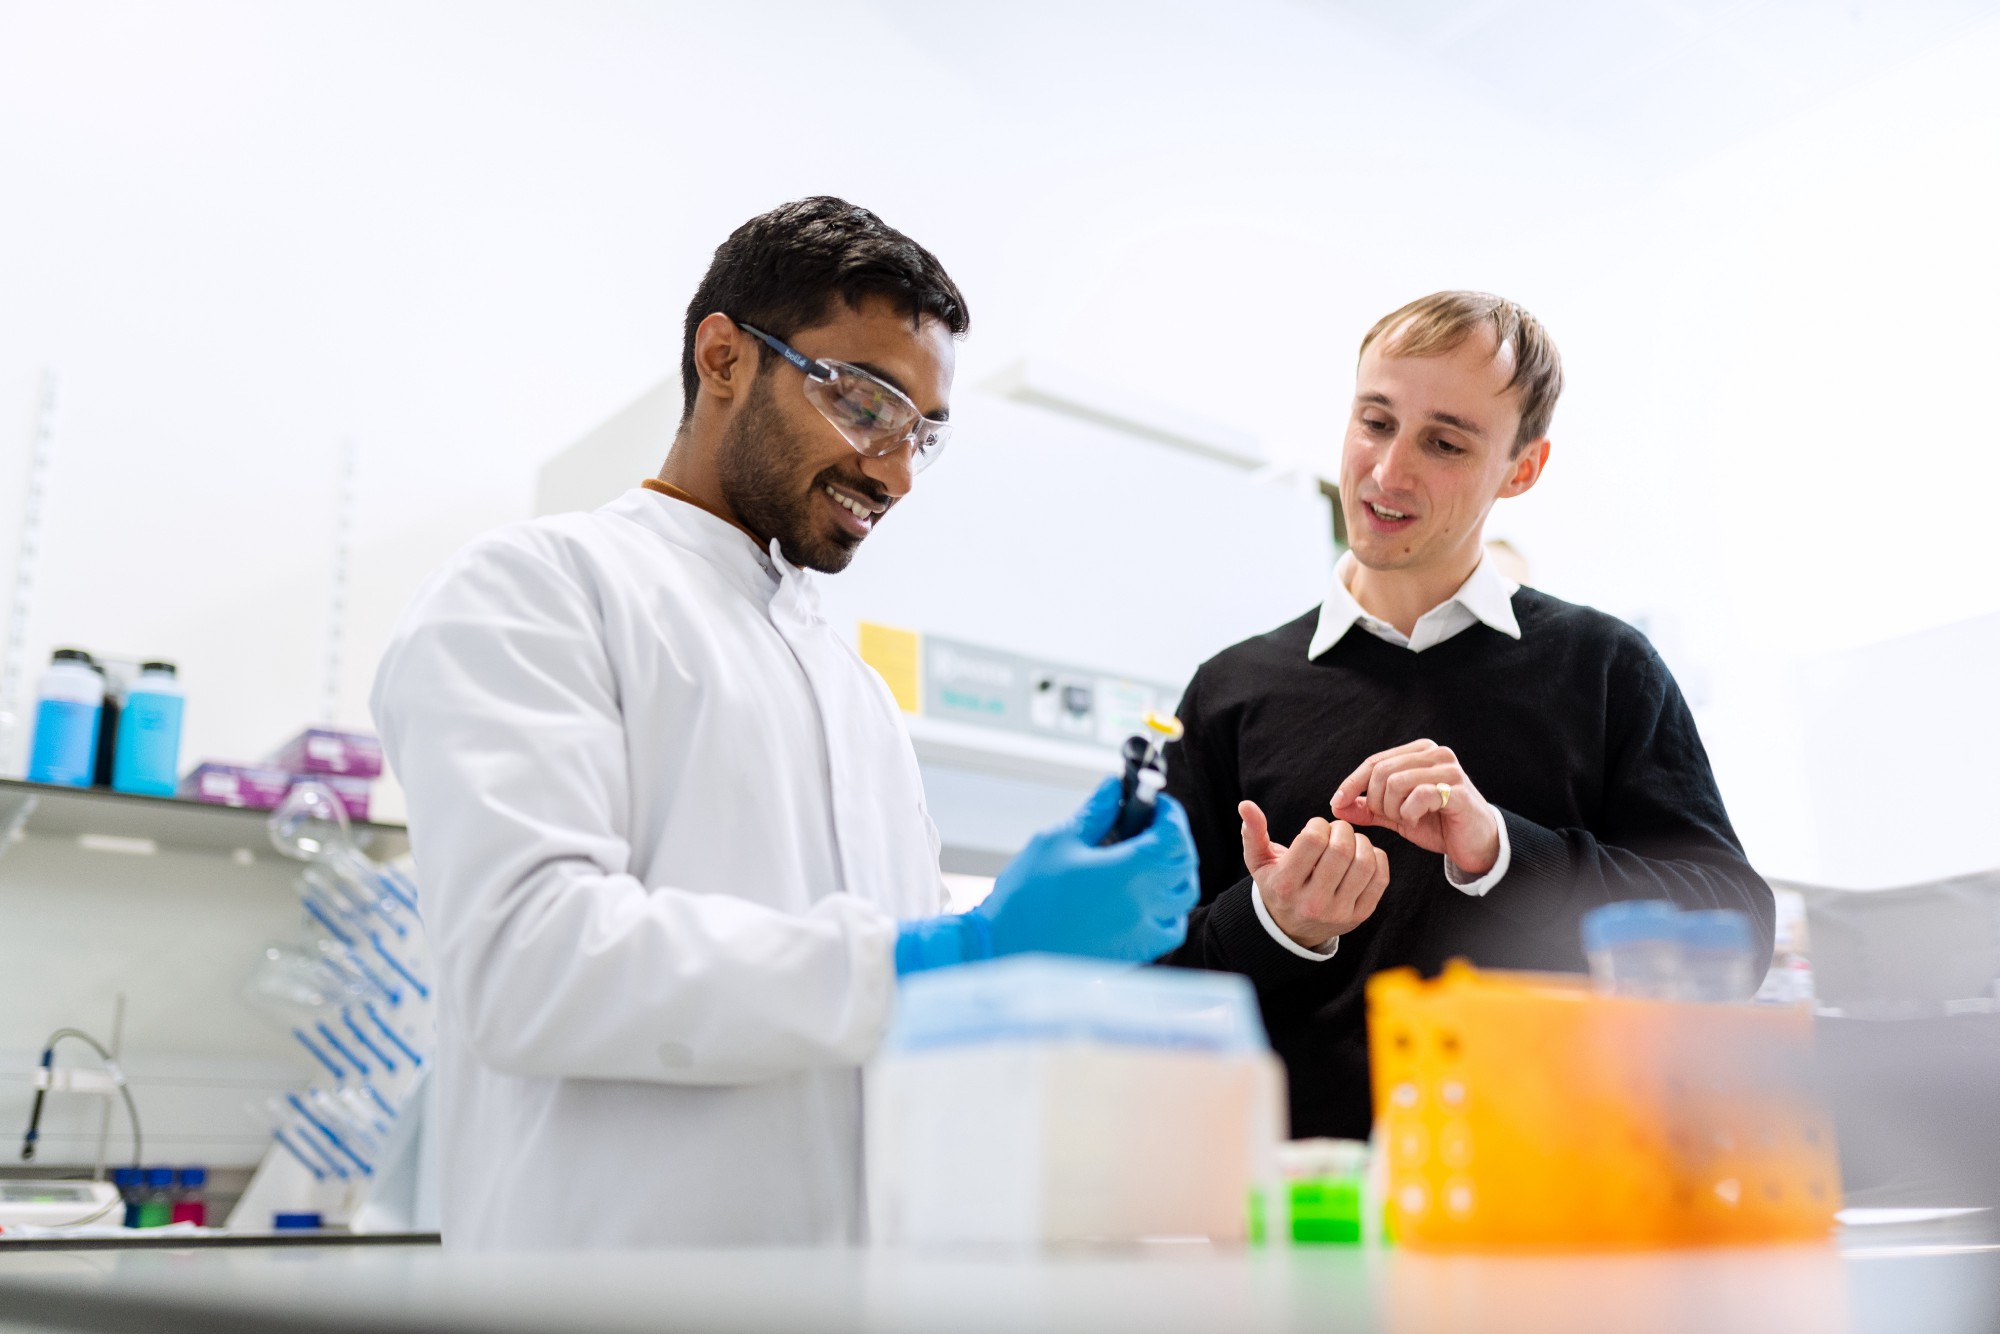 Stock photo of two student scientists in a lab.